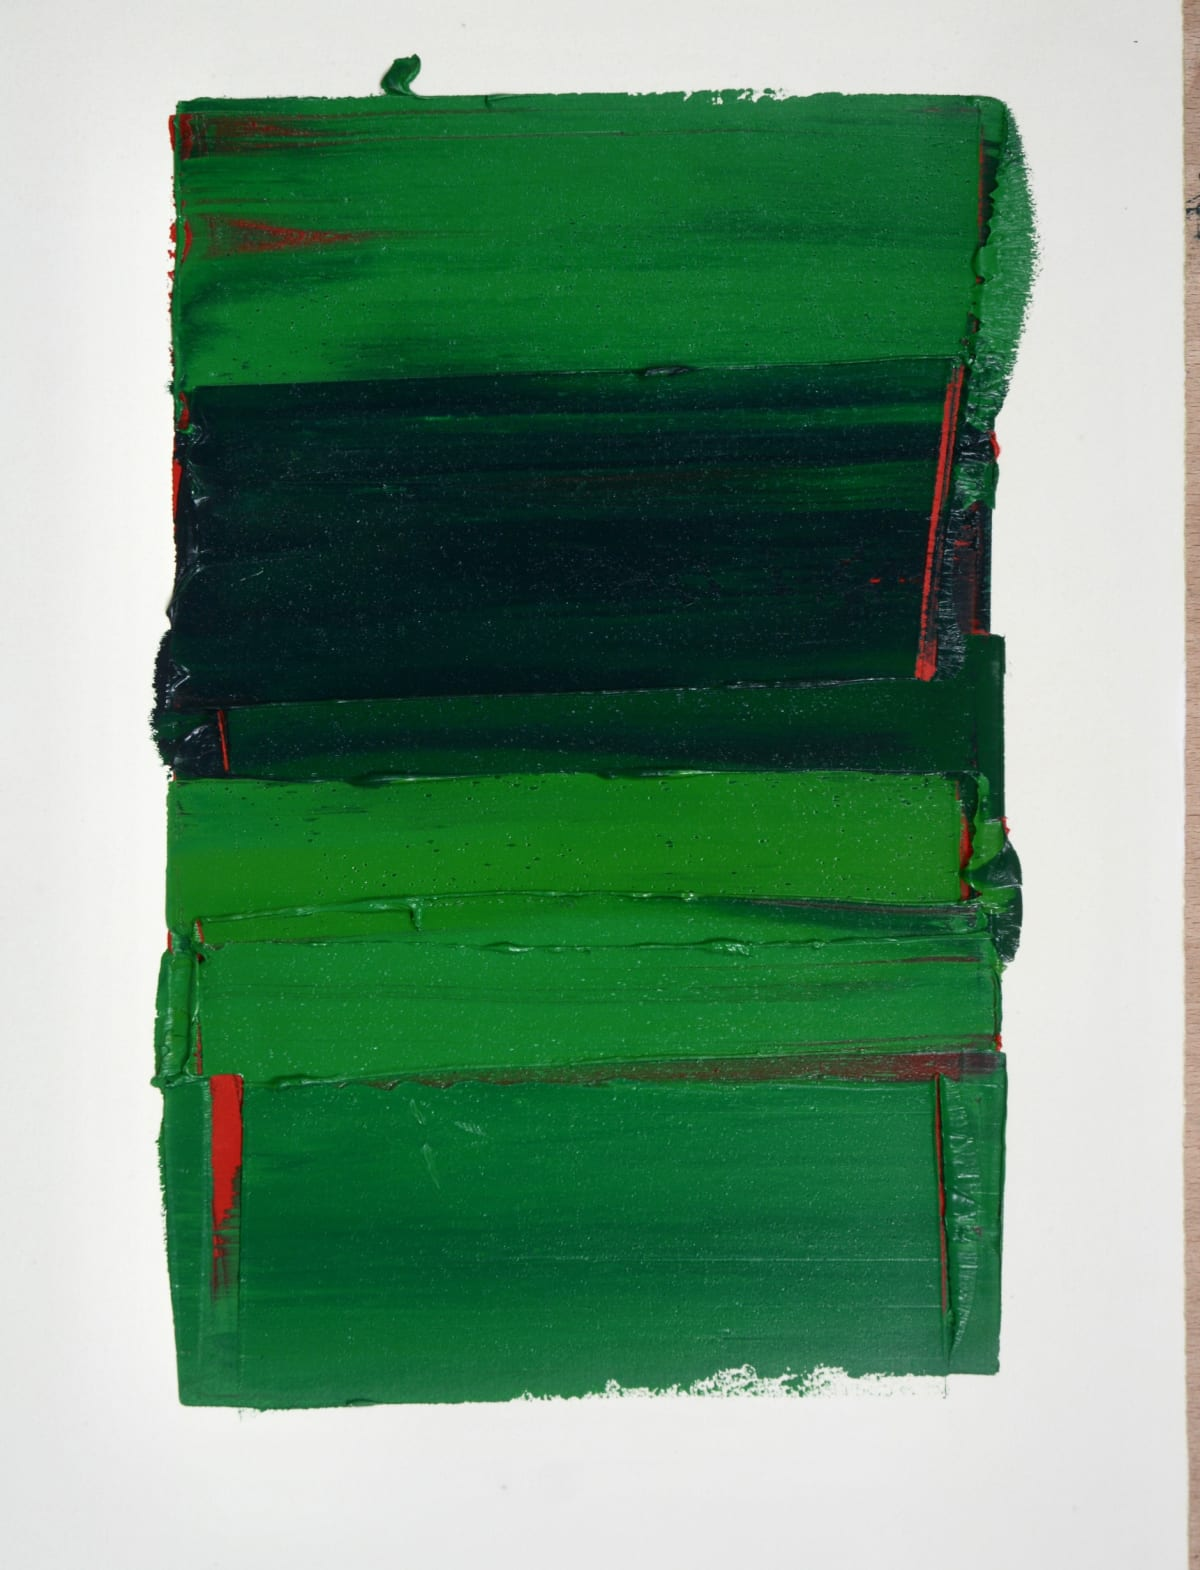 Marcus Hodge, Green Stacks, 2019